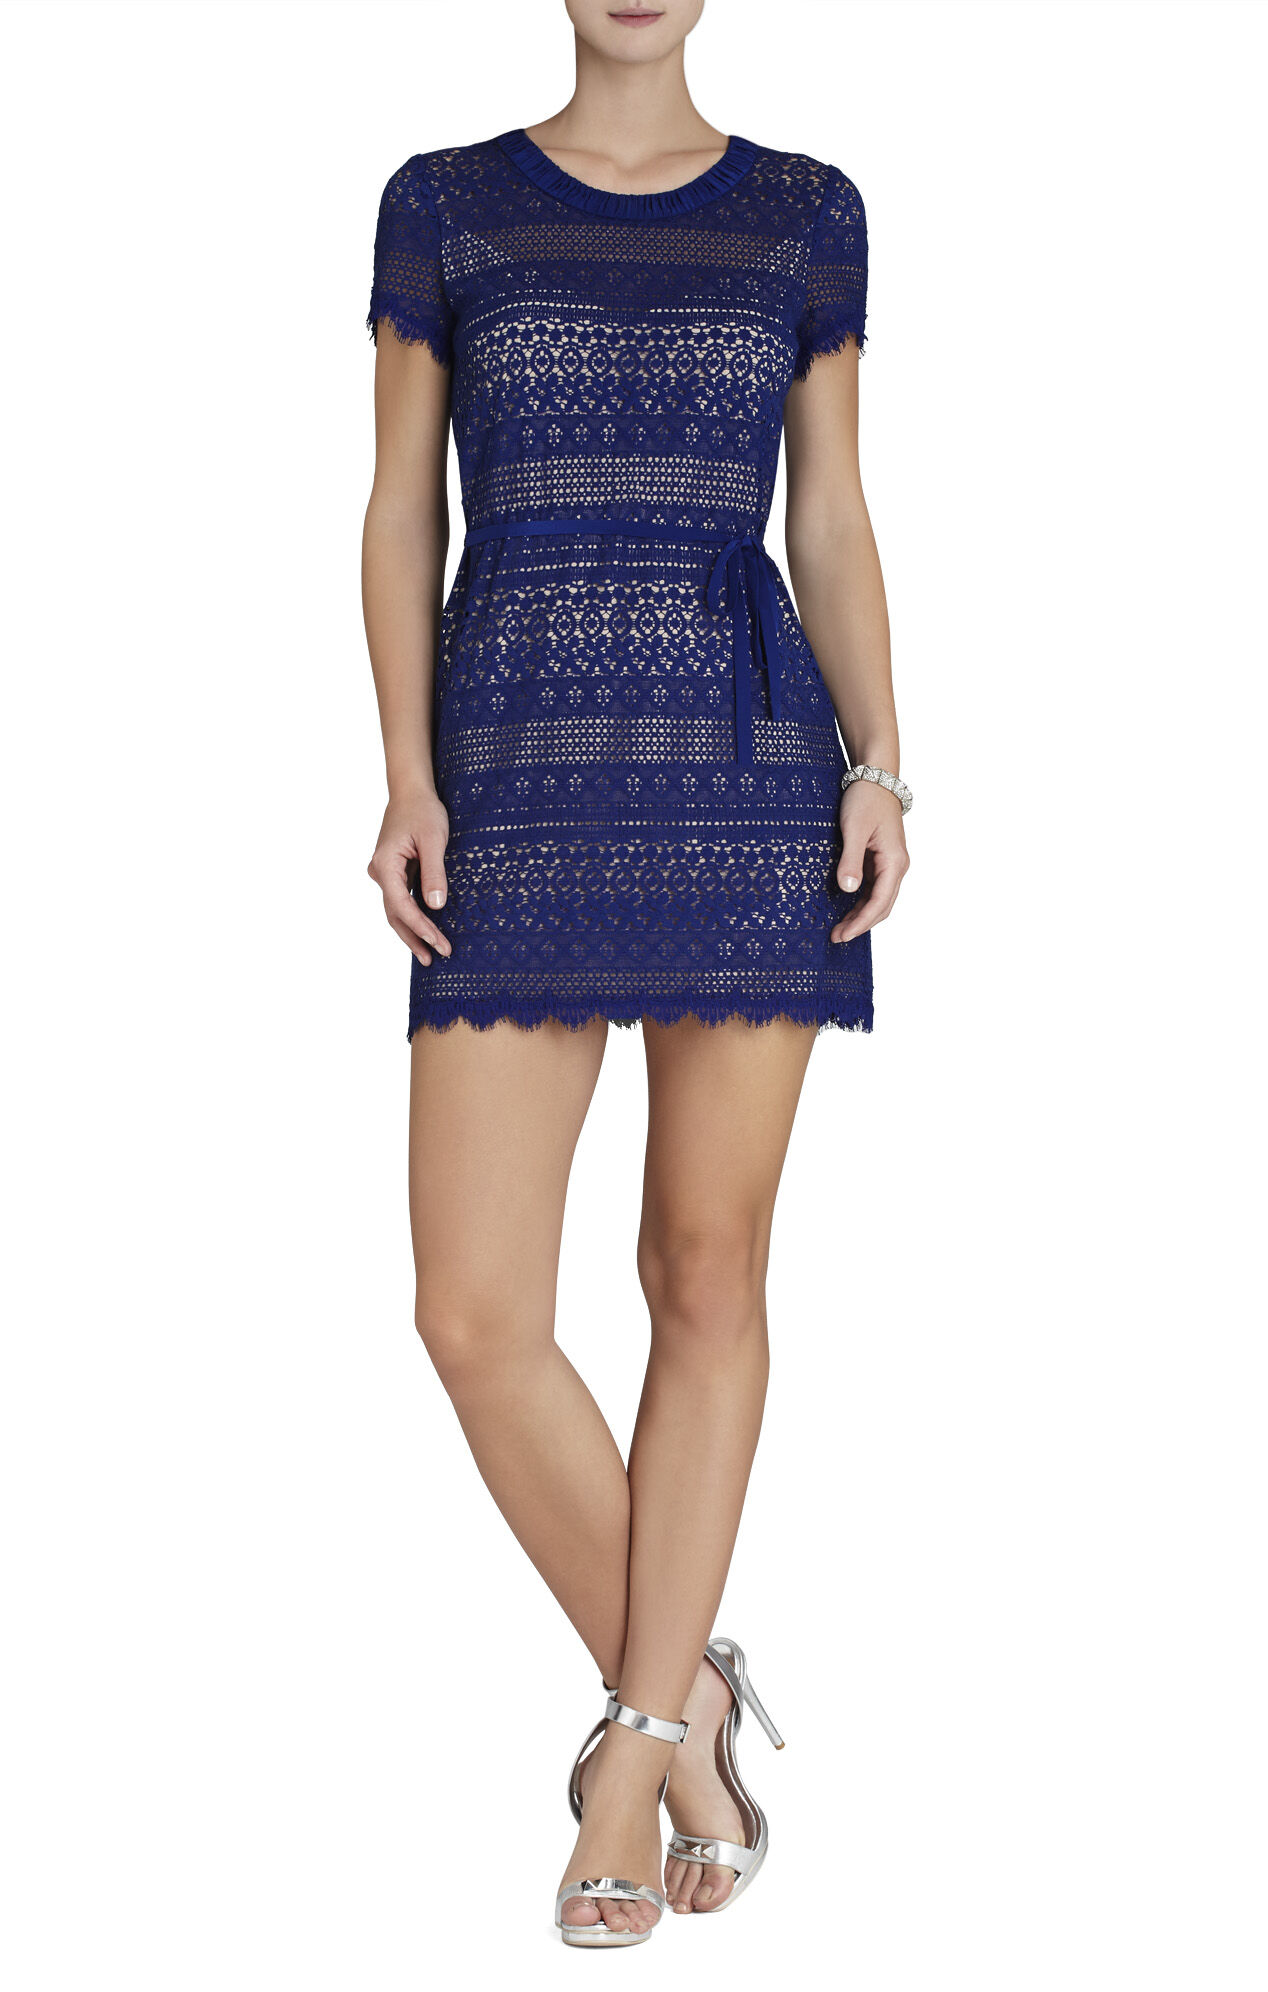 Darlita Lace Sheath Dress